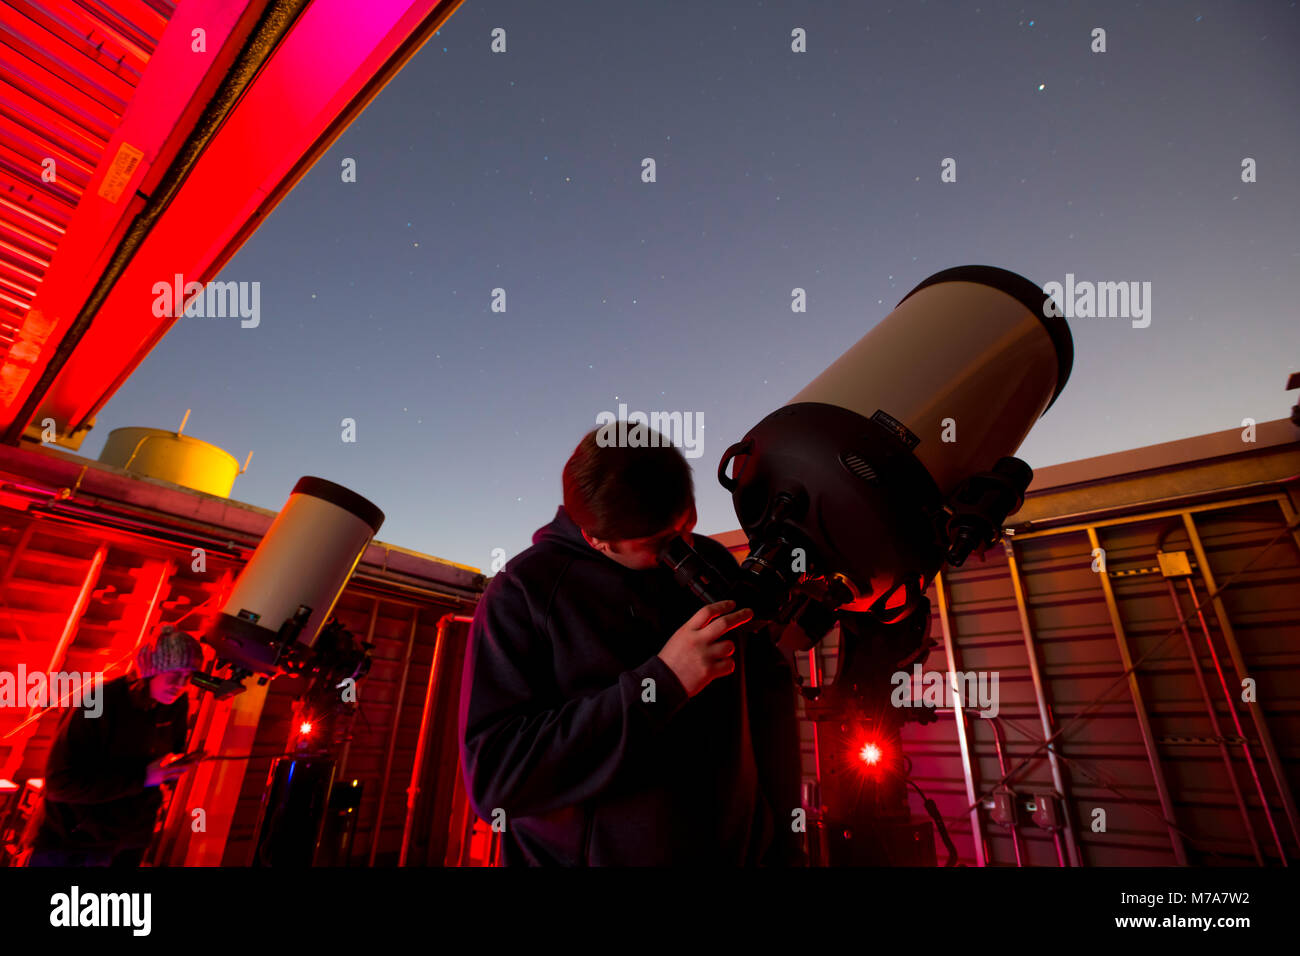 amateur-star-gazing-at-montgomery-college-rockville-maryland-observatory-M7A7W2.jpg